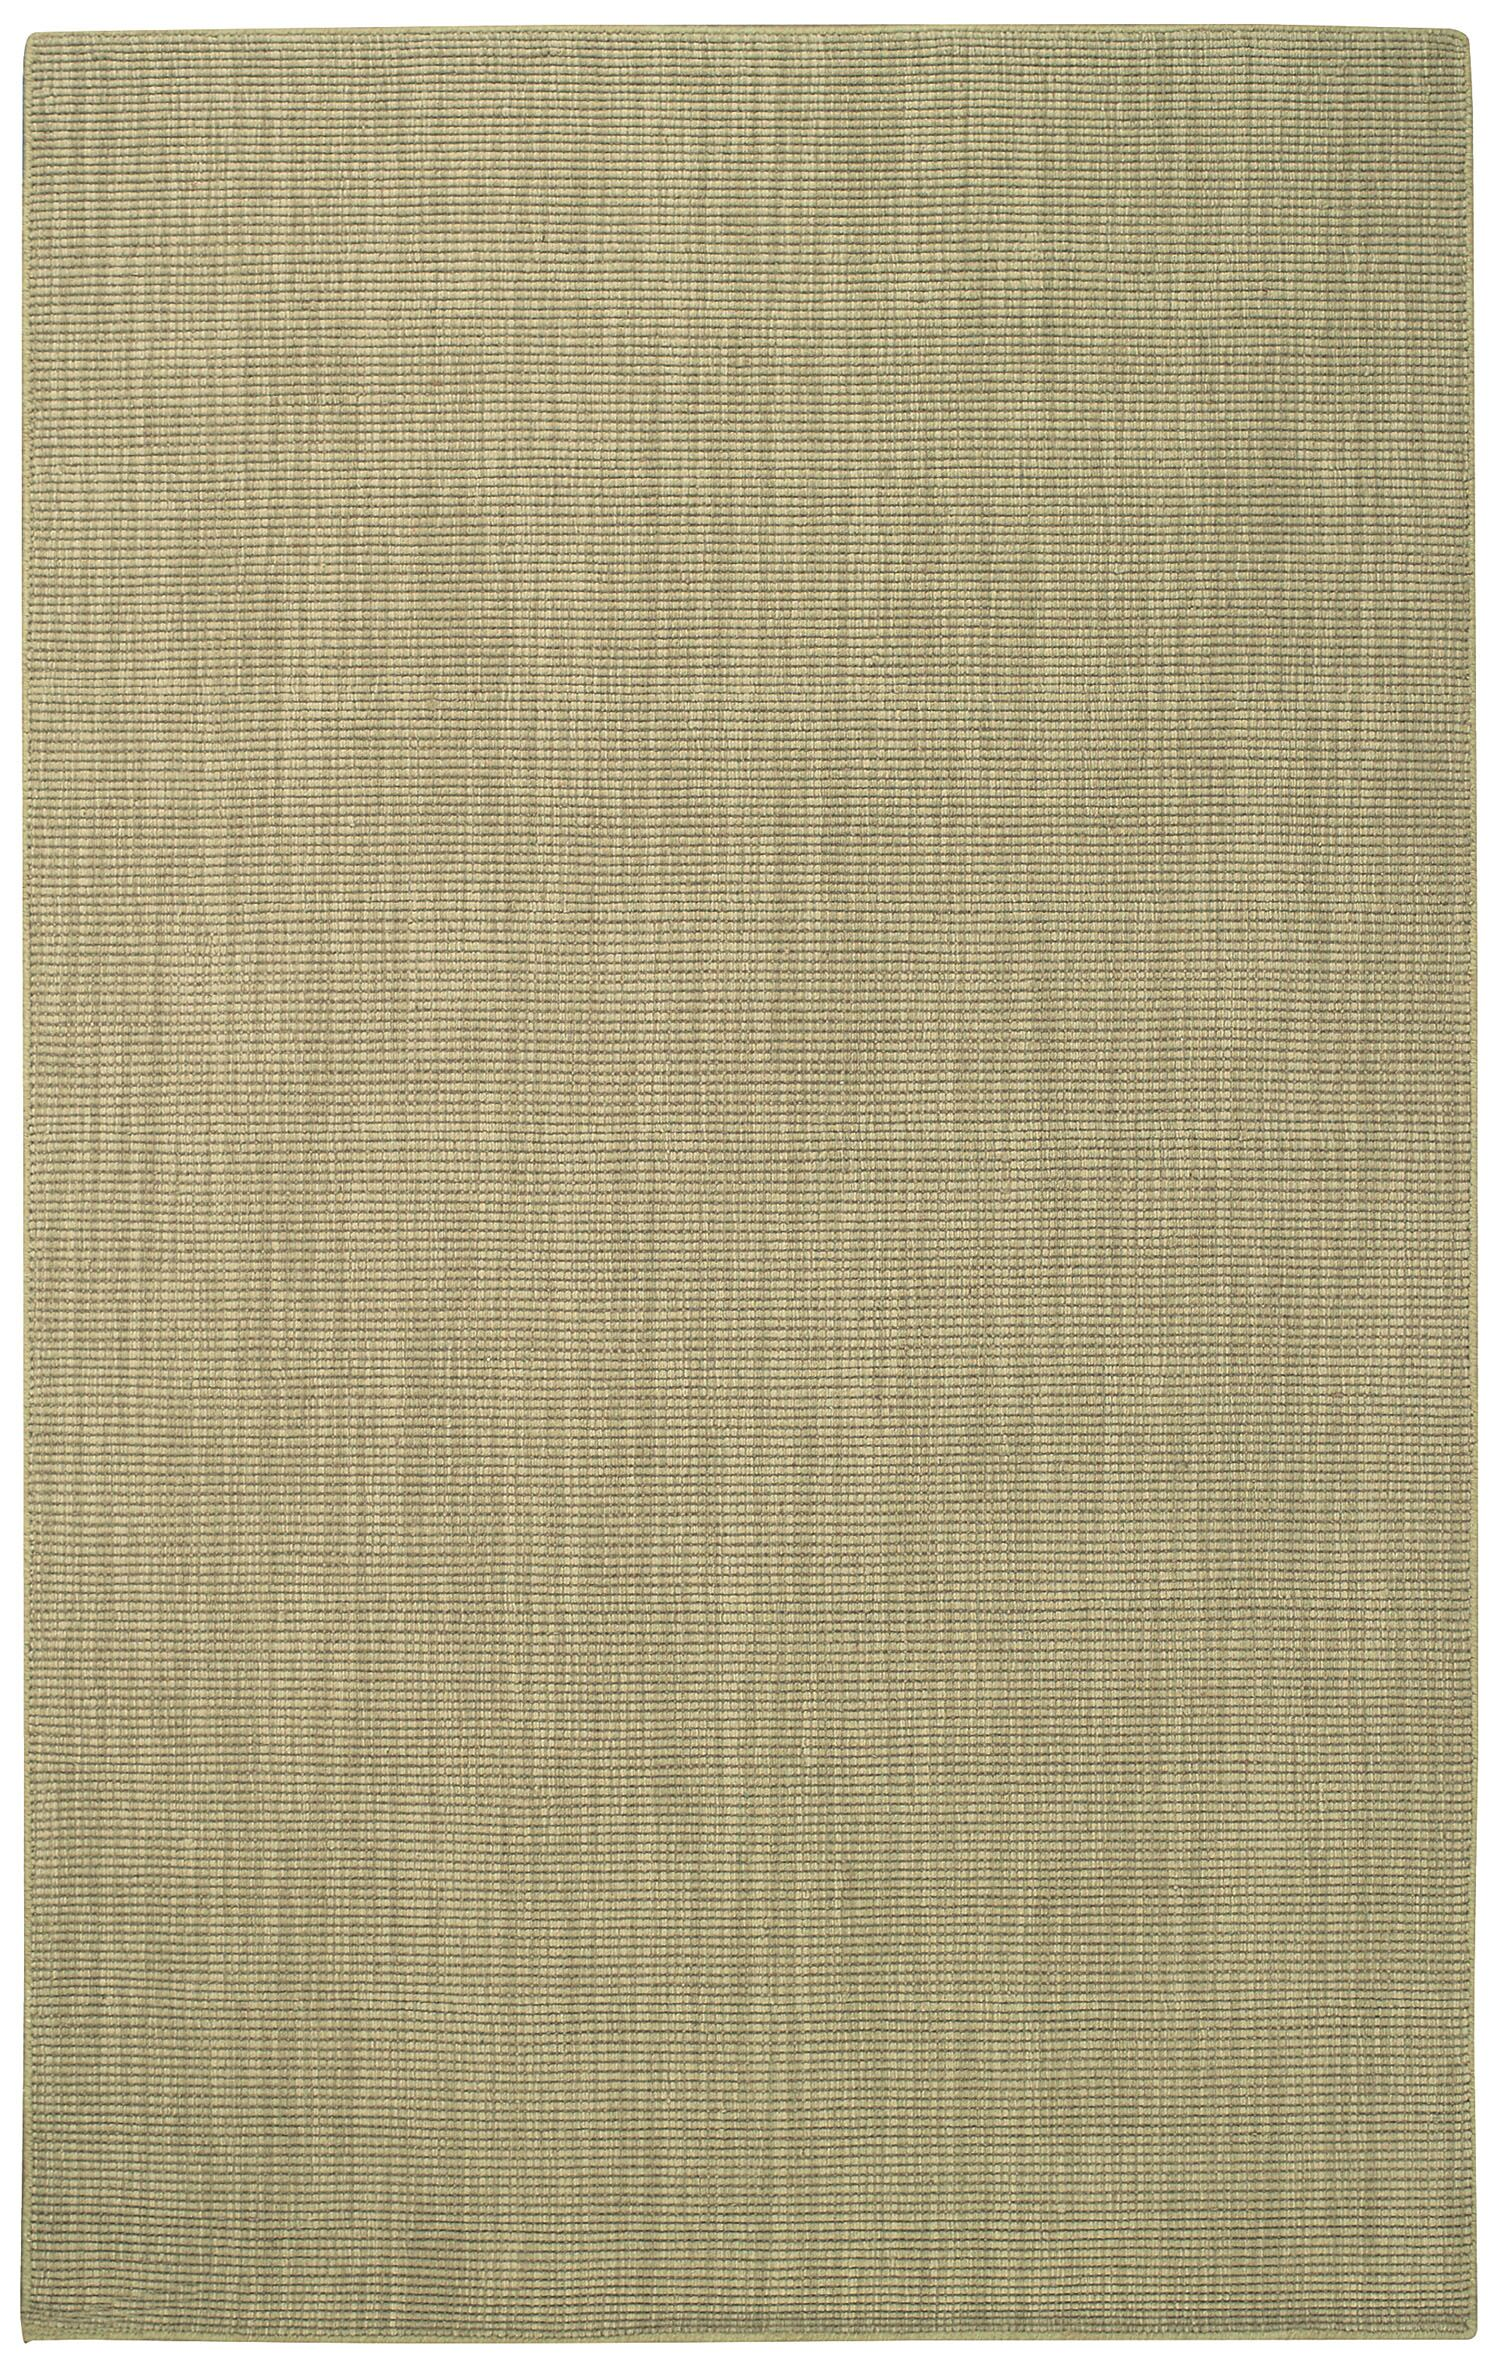 Hermitage Green Area Rug Rug Size: 9' x 12'